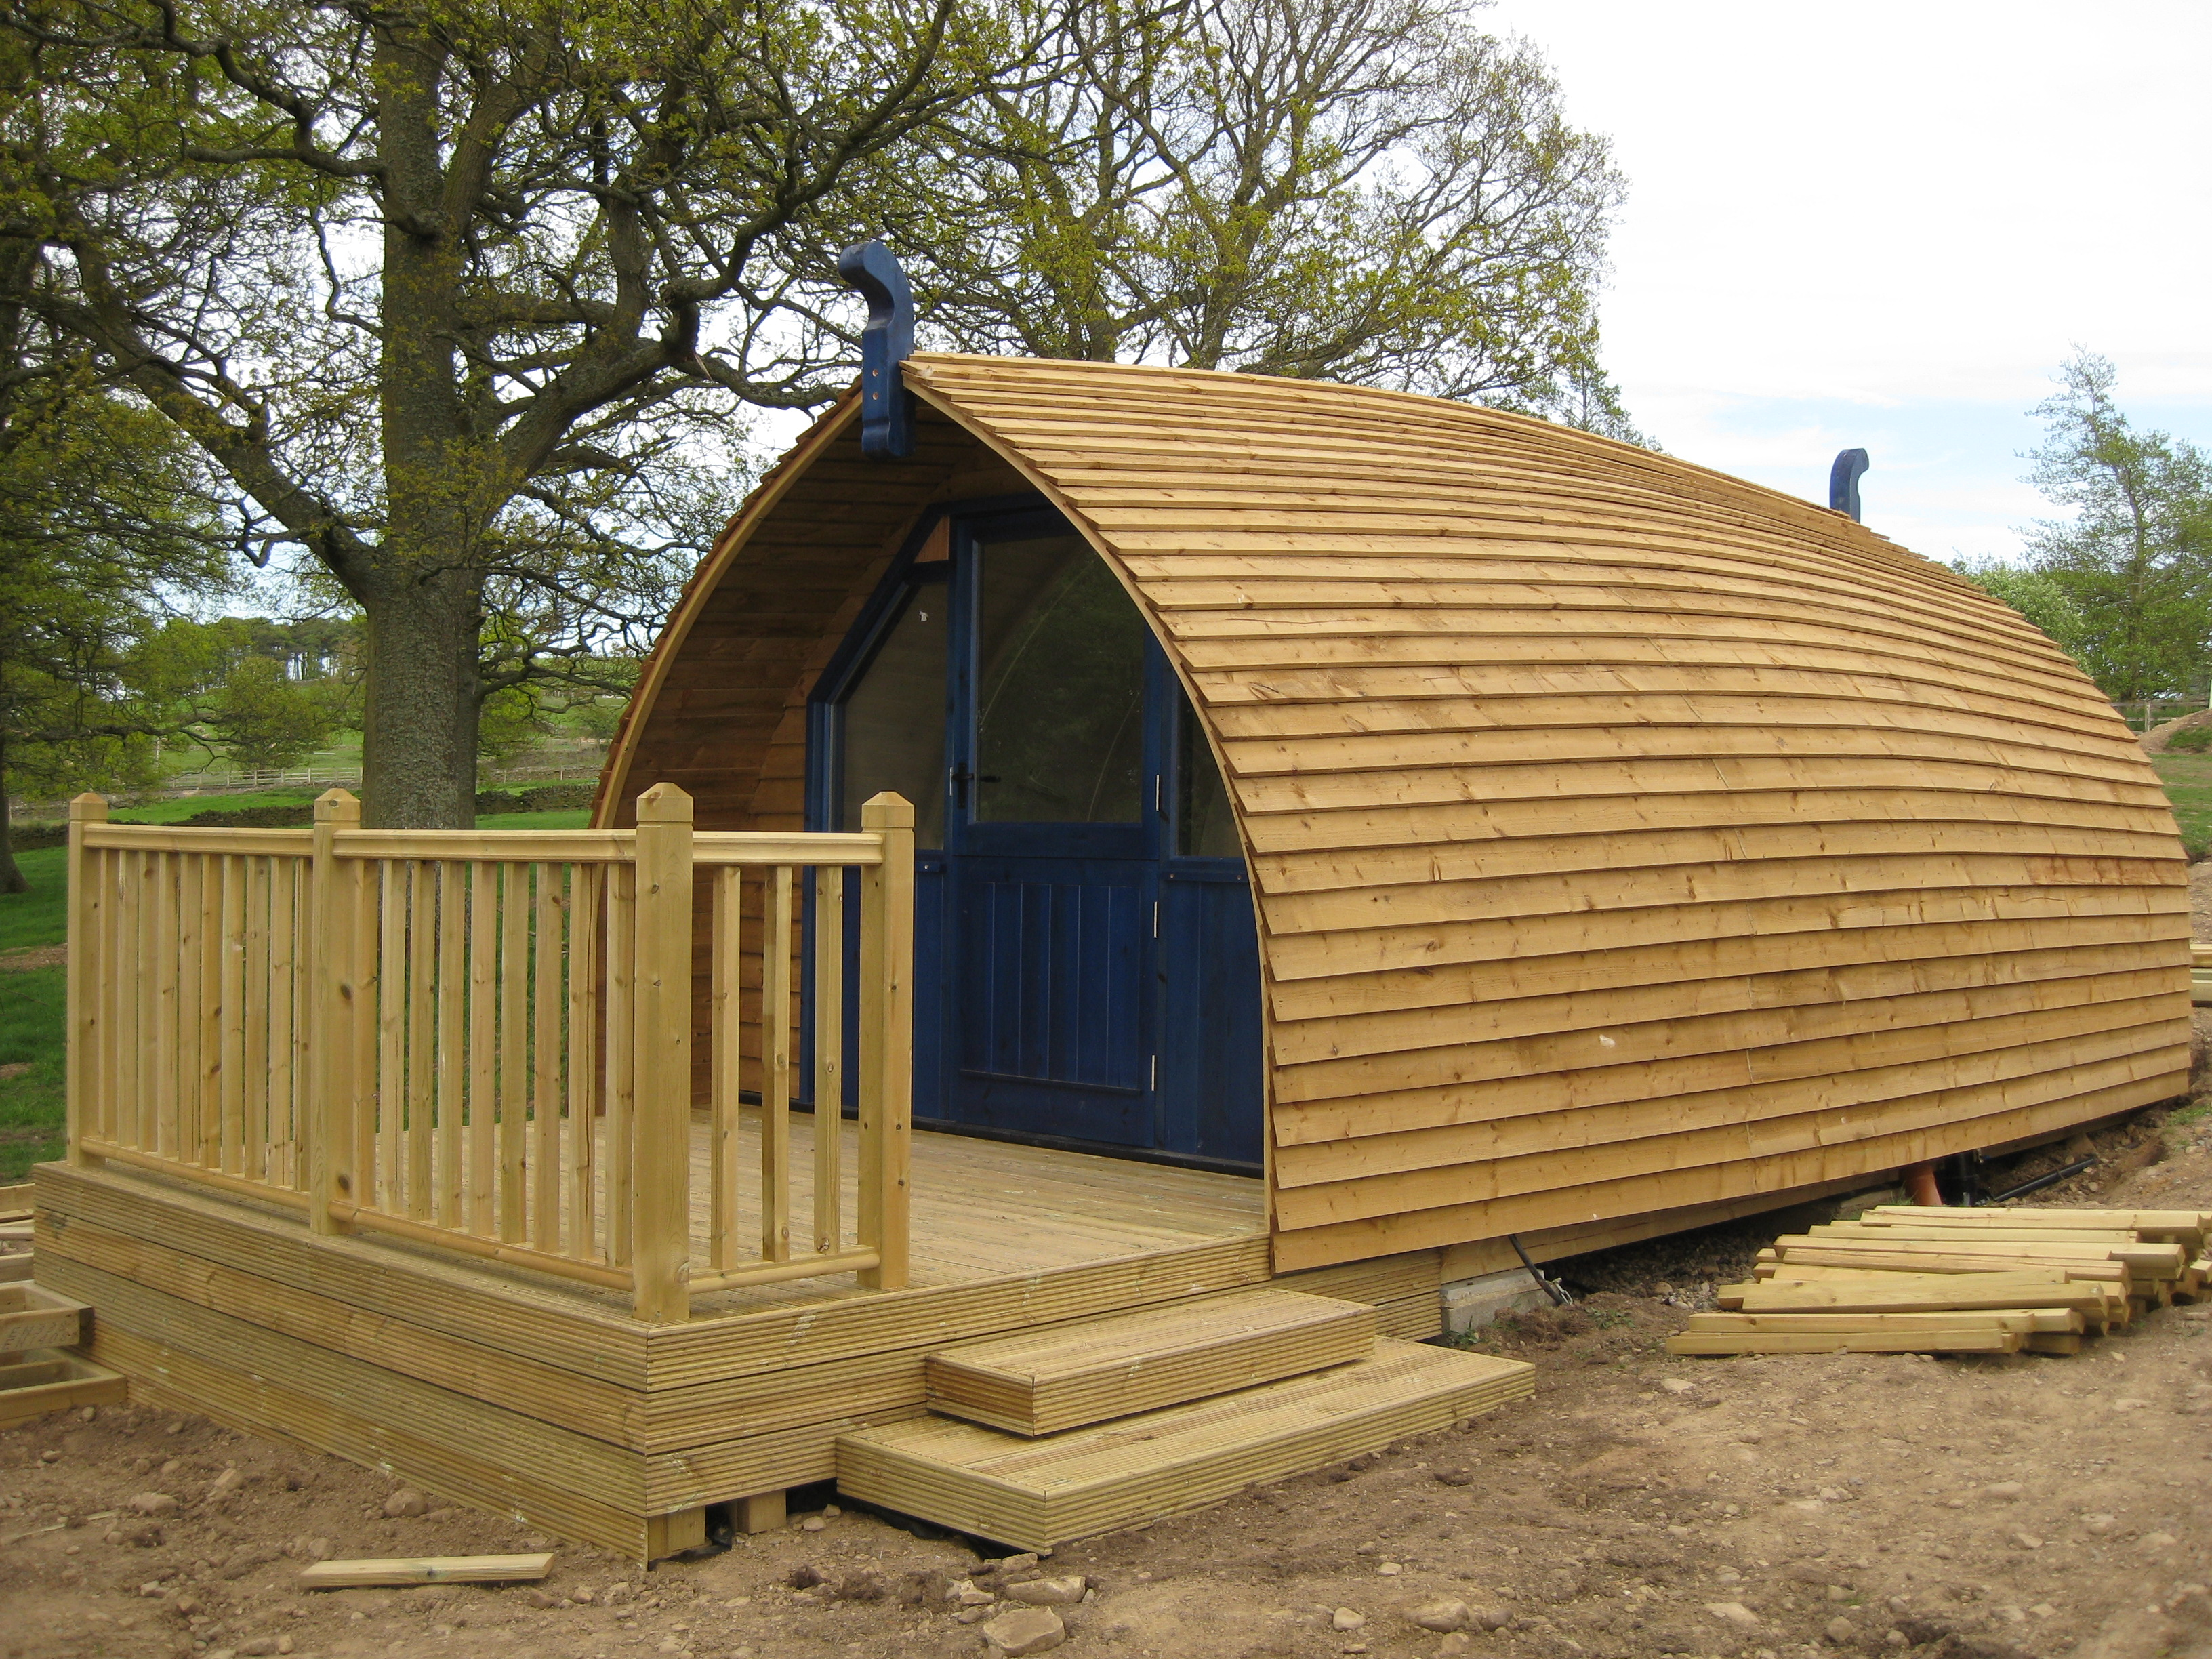 Side view of the glamping cabin being put in place